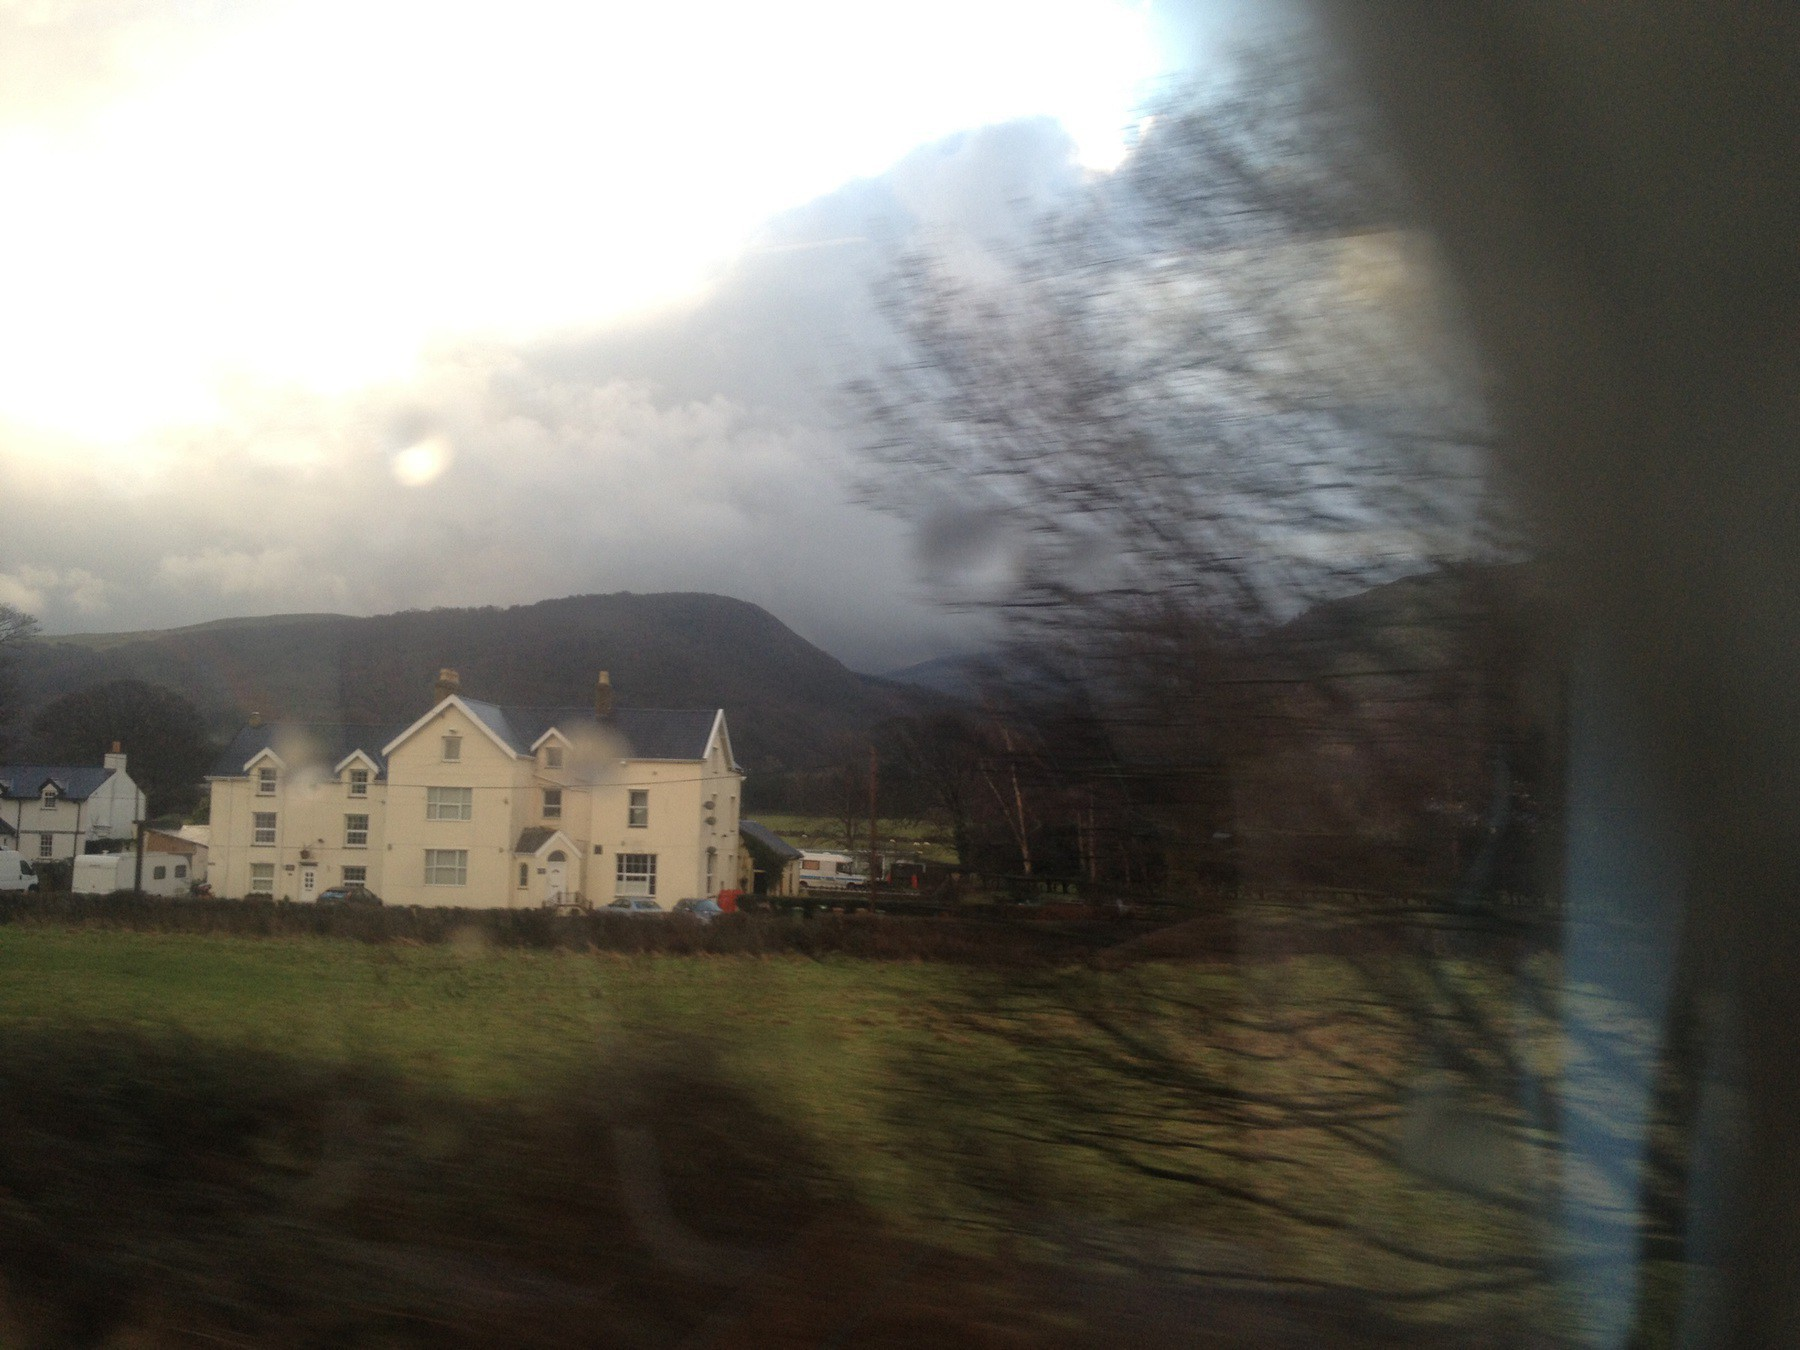 View of manor house, field, and hills through a train window.